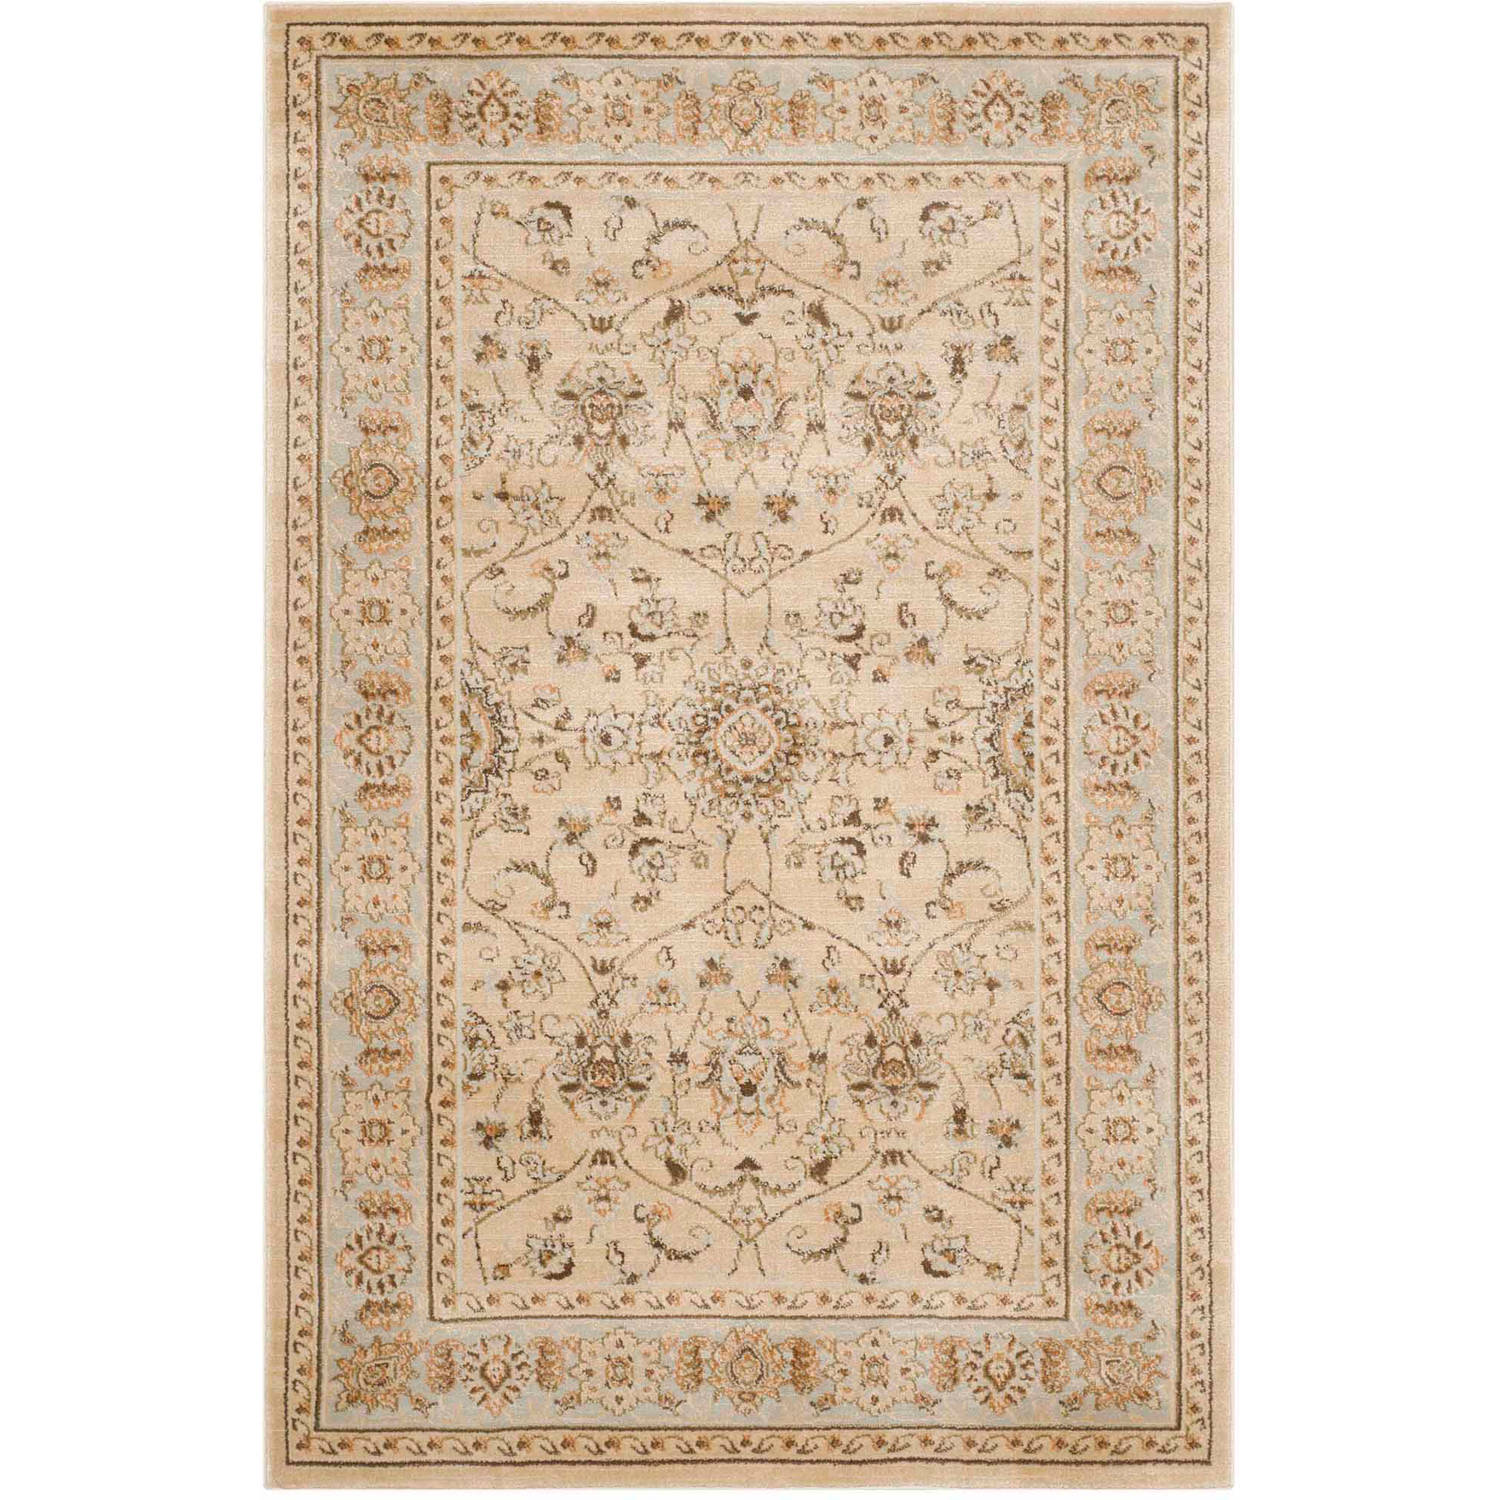 Safavieh Florenteen Penny Power-Loomed Area Rug